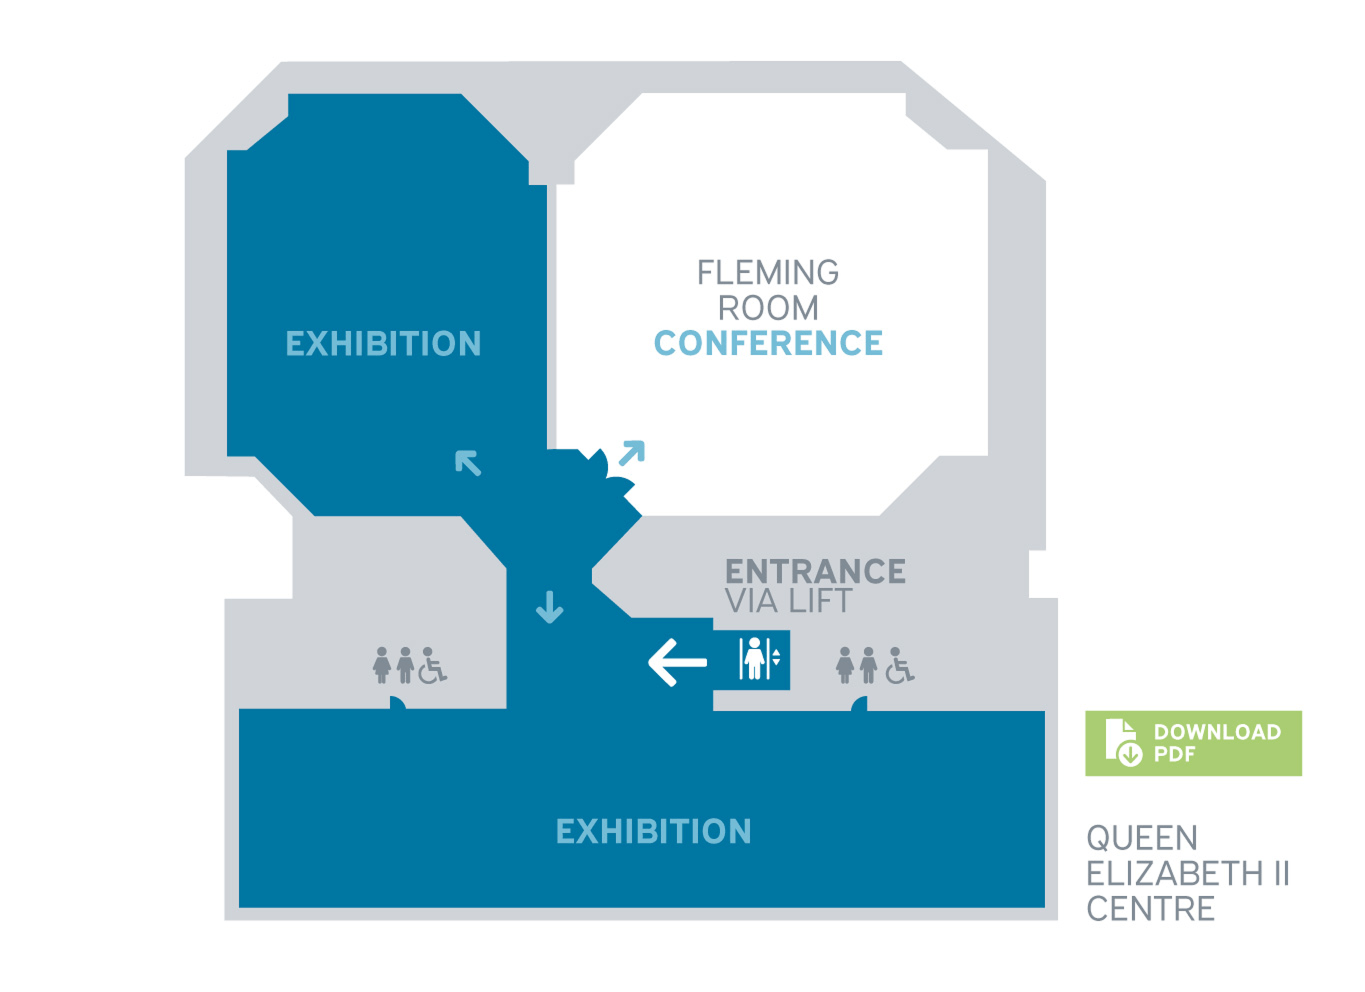 Overall exhibit floorplan